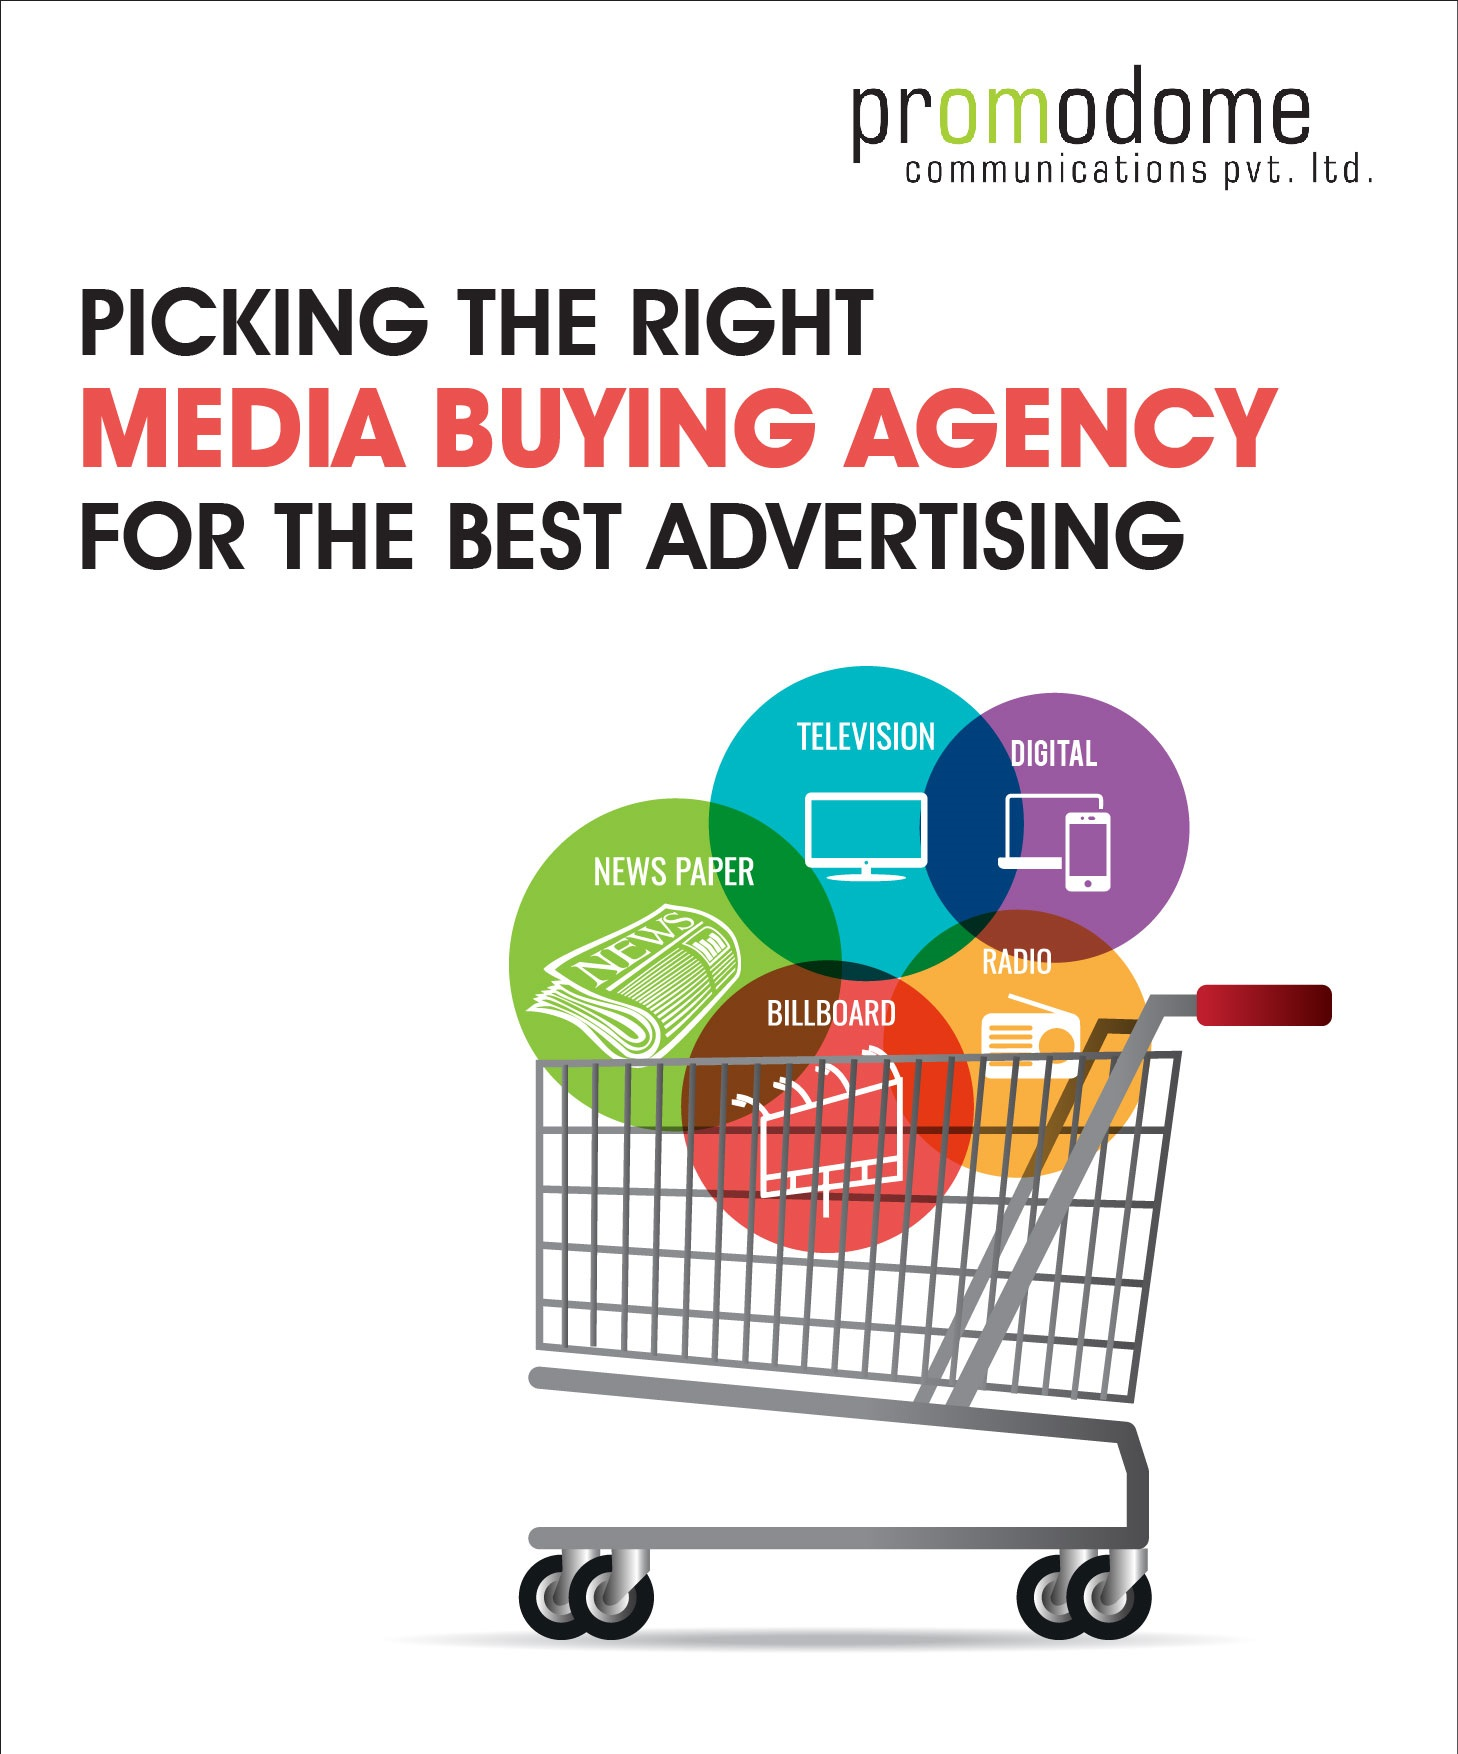 Picking the right media buying agency for optimal advertising